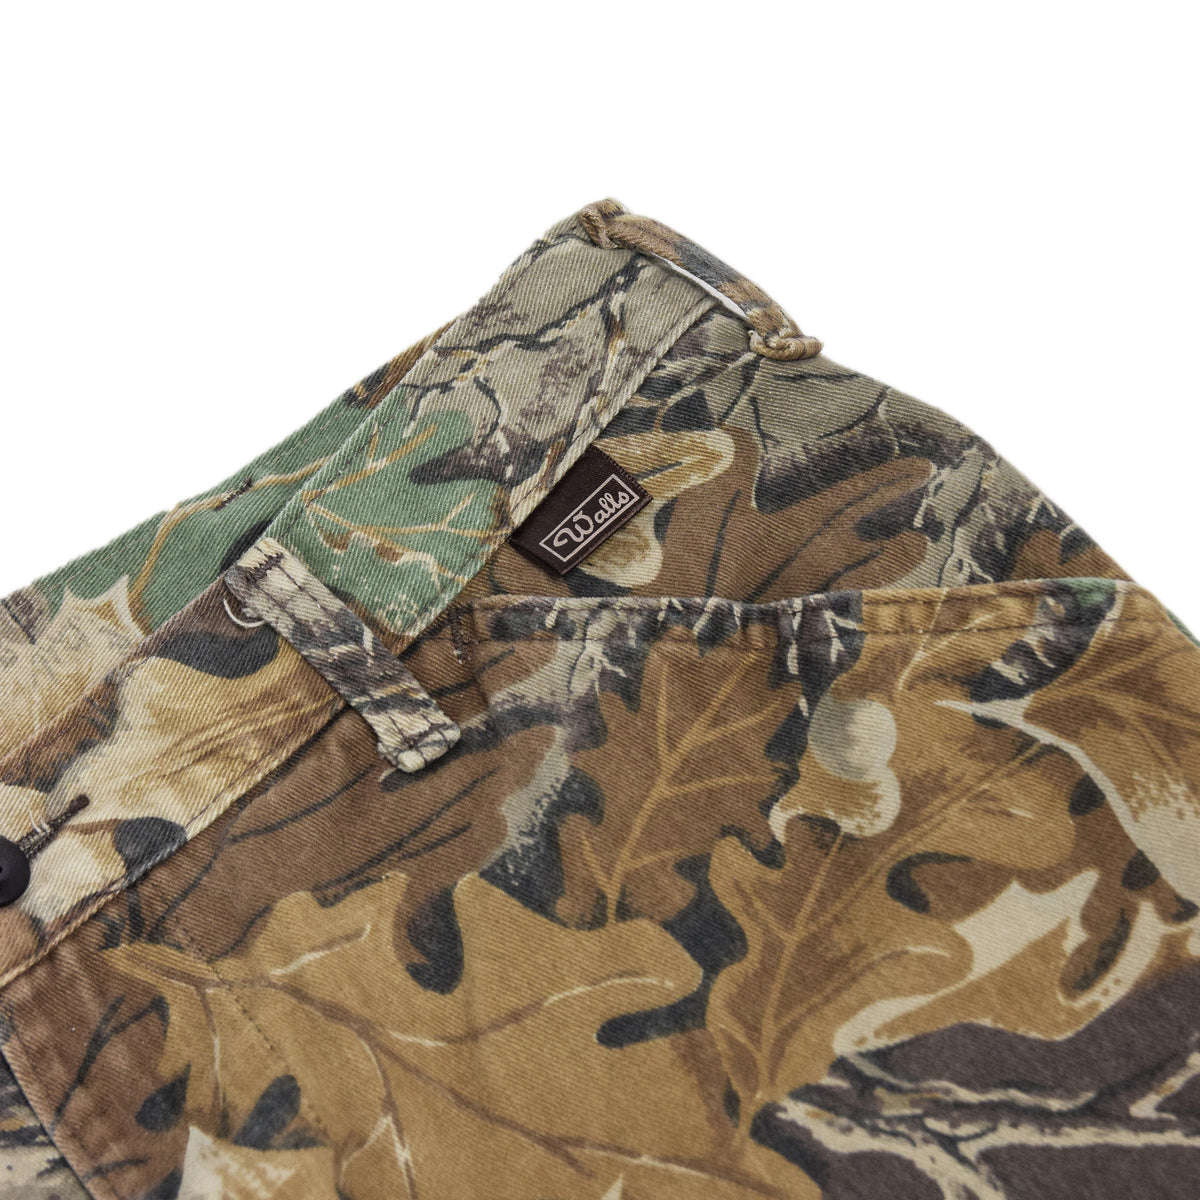 Vintage Walls USA Leaf Camo Hunting Cargo Pants Field Trousers Medium 30 - 32 W walls label